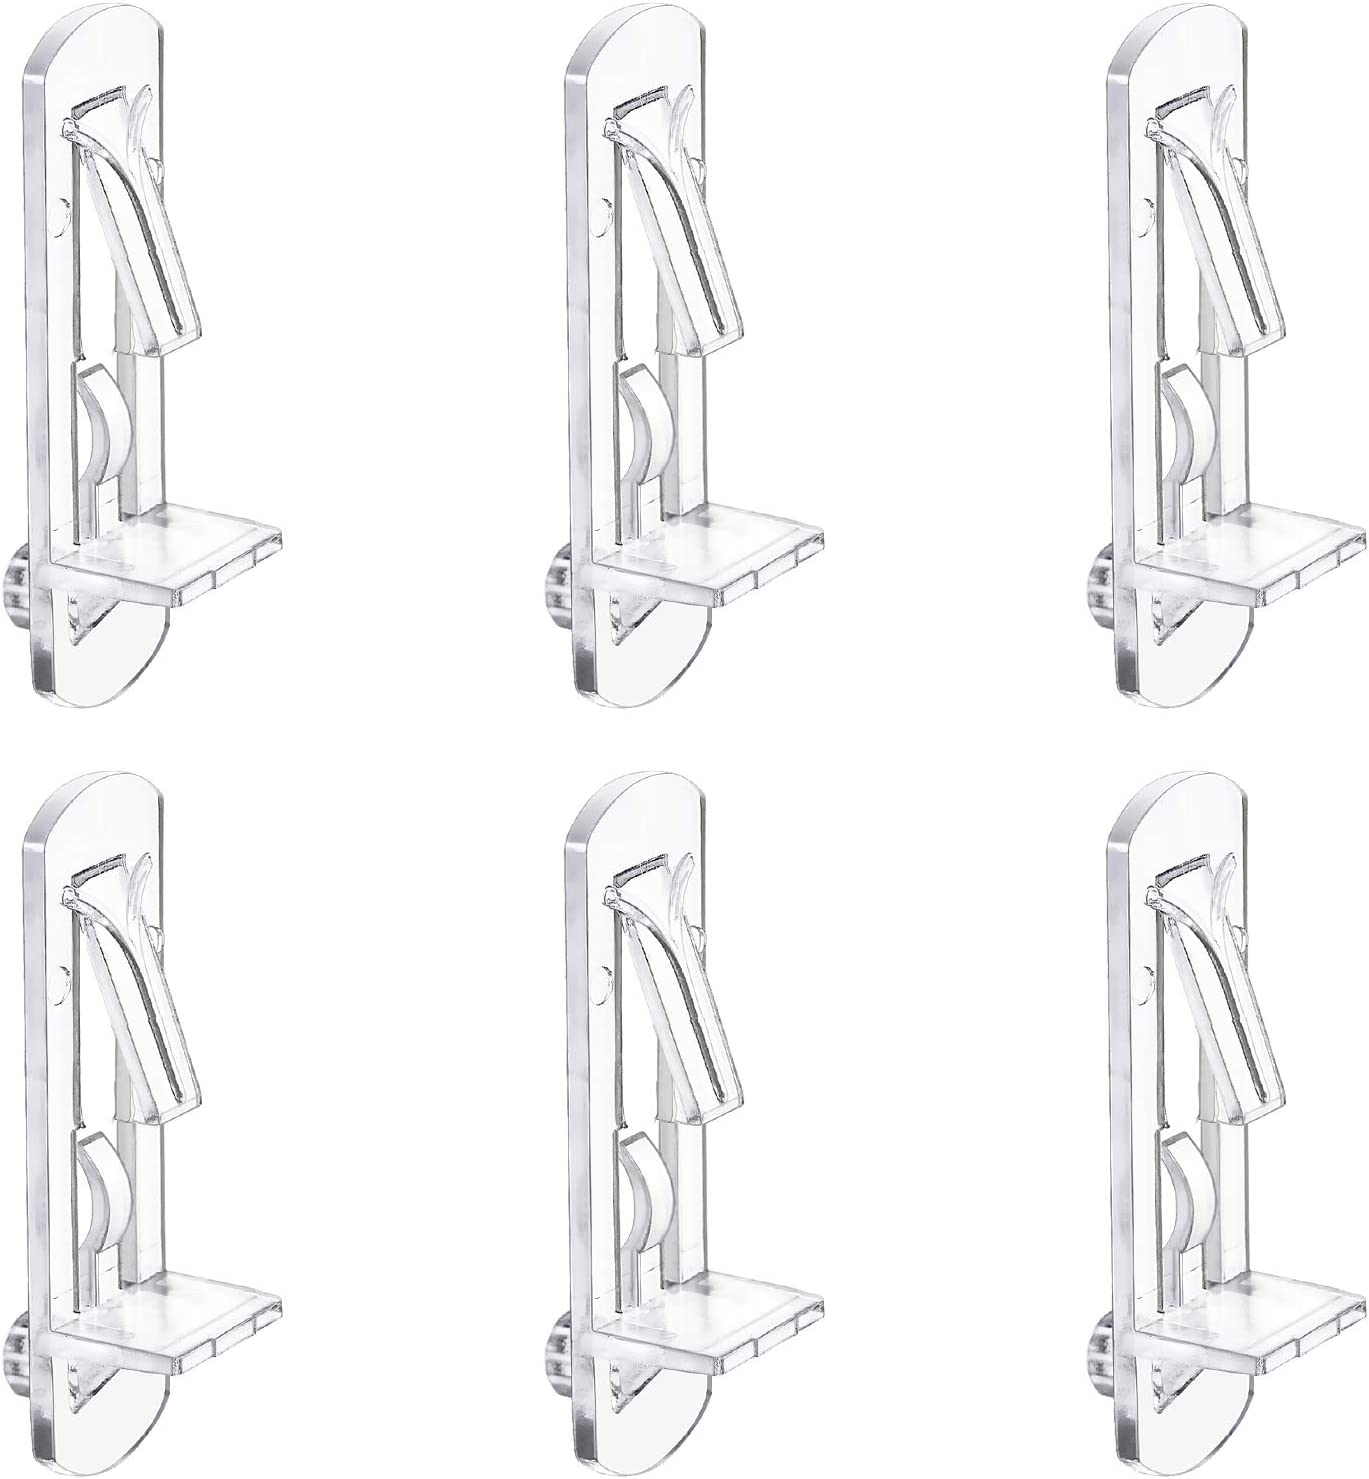 7.9 mm Clear Plastic Shelves Bracket Self-Locking Cabinet Pin for Kitchen Slelves Holder 50 Pack with Packing Box Shelf Support Pegs